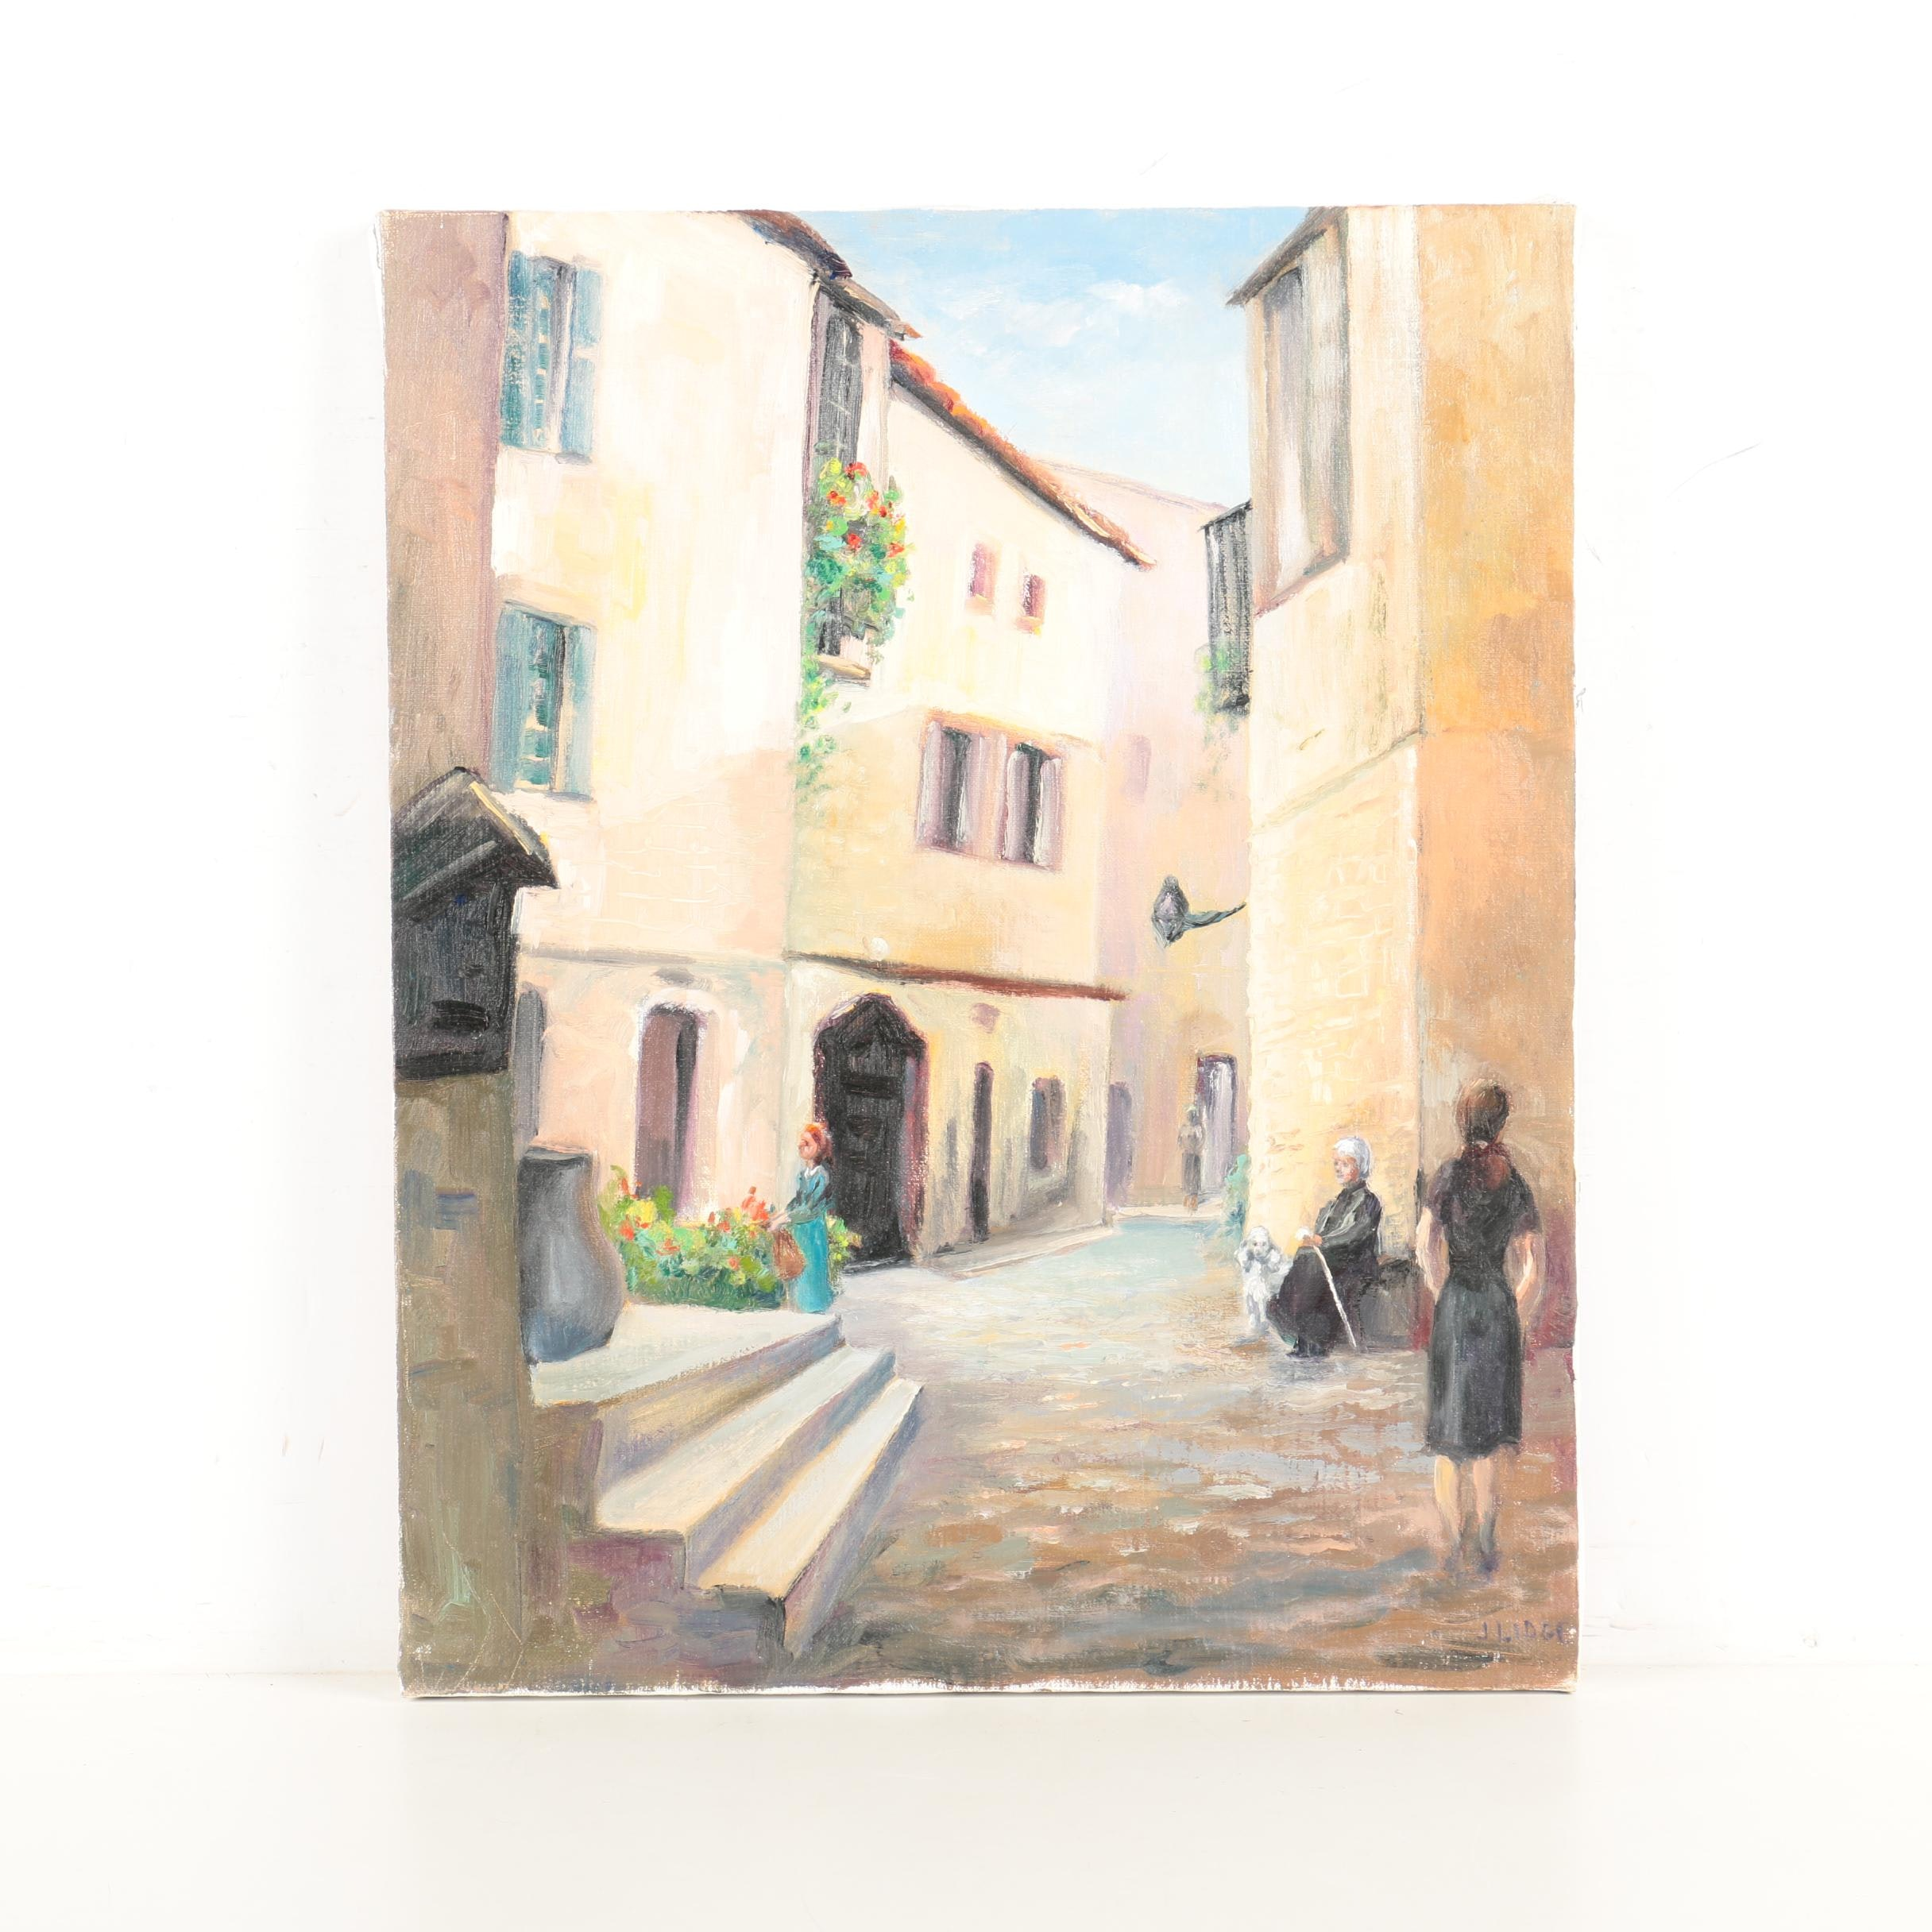 J. Lidge Oil Painting on Canvas of Mediterranean Street Scene